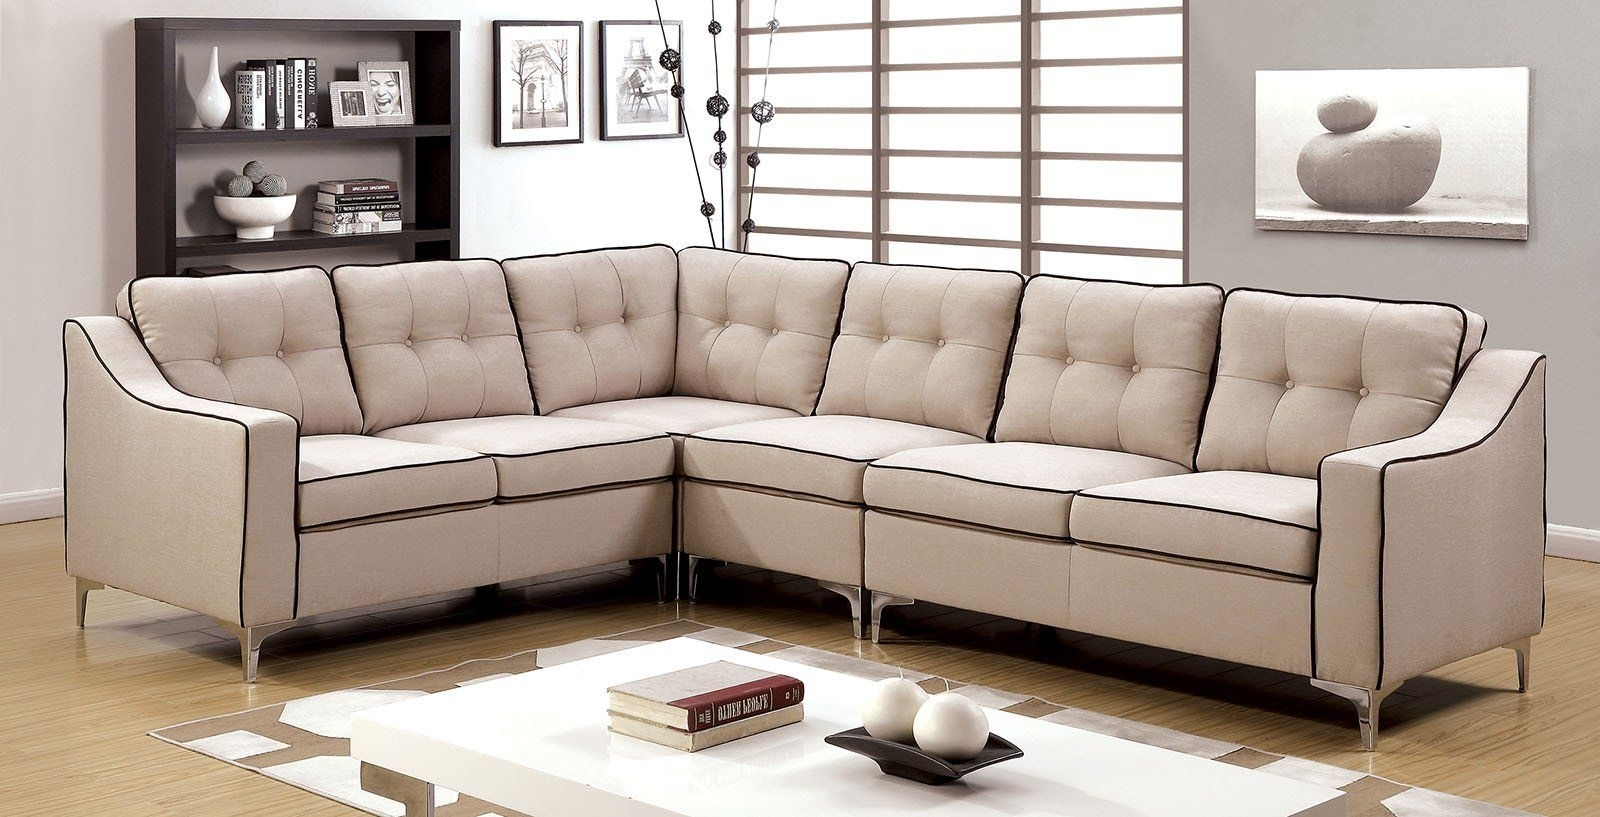 Glenda Ii Contemporary Sectional | Products Intended For Aidan 4 Piece Sectionals (View 10 of 25)